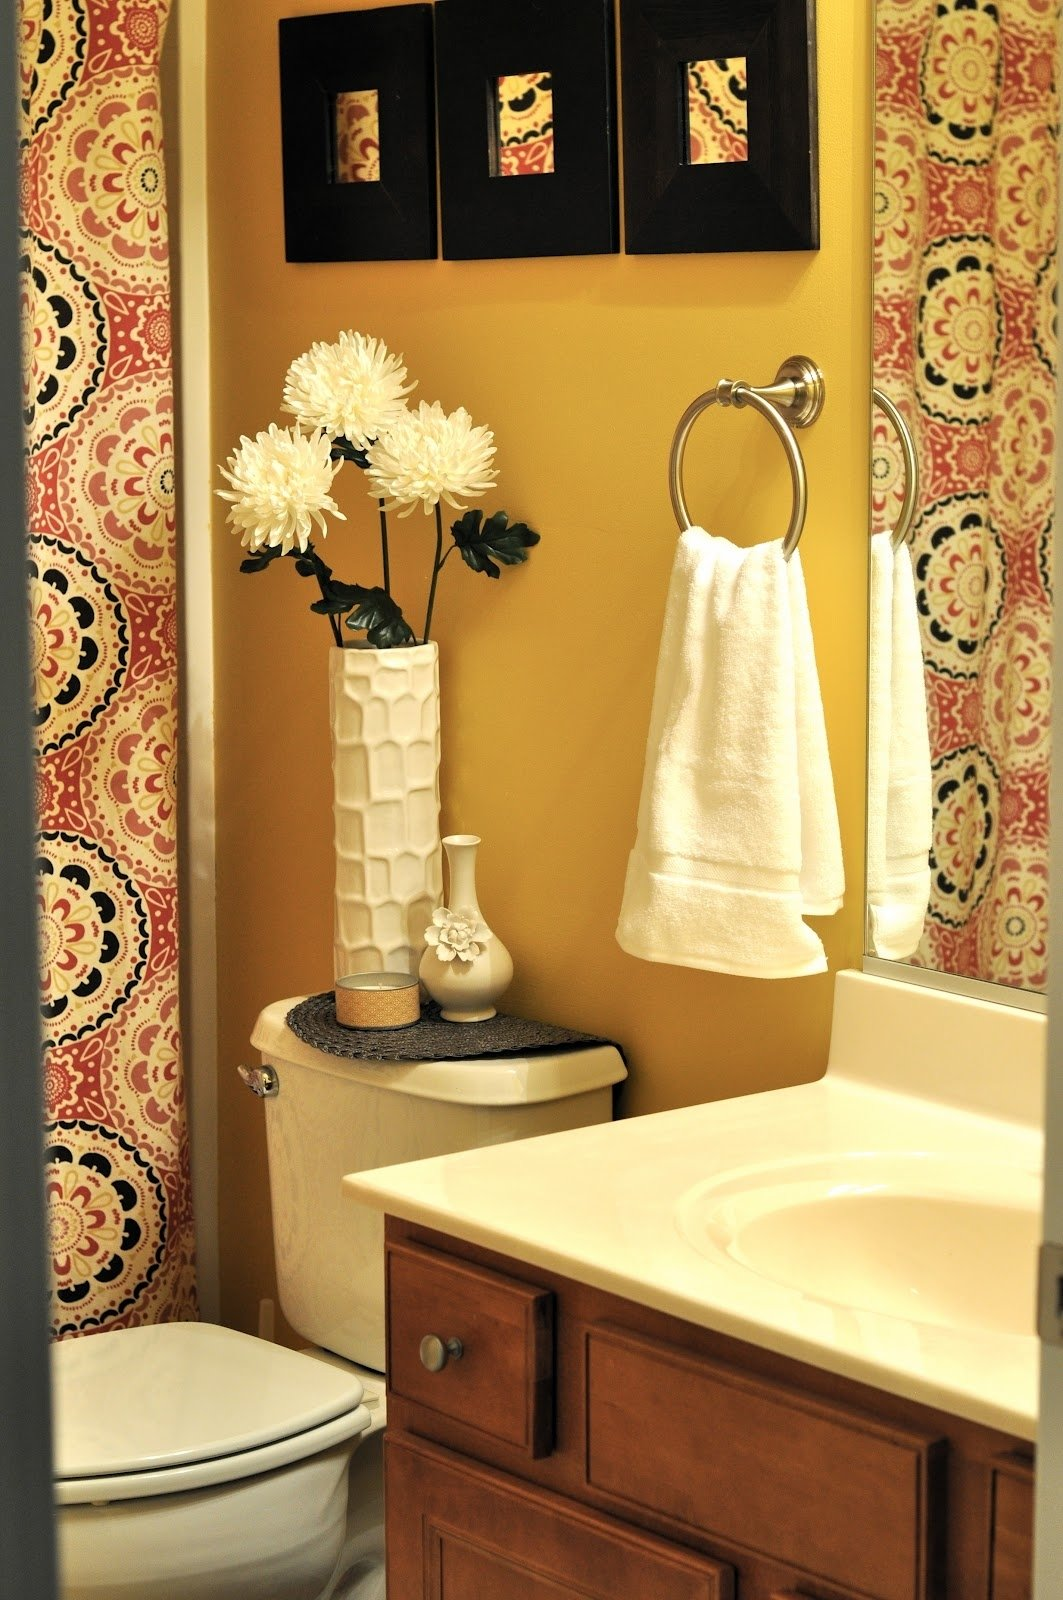 10 Famous Small Apartment Bathroom Decorating Ideas marvelous small bathroom themes about house decor inspiration with 1